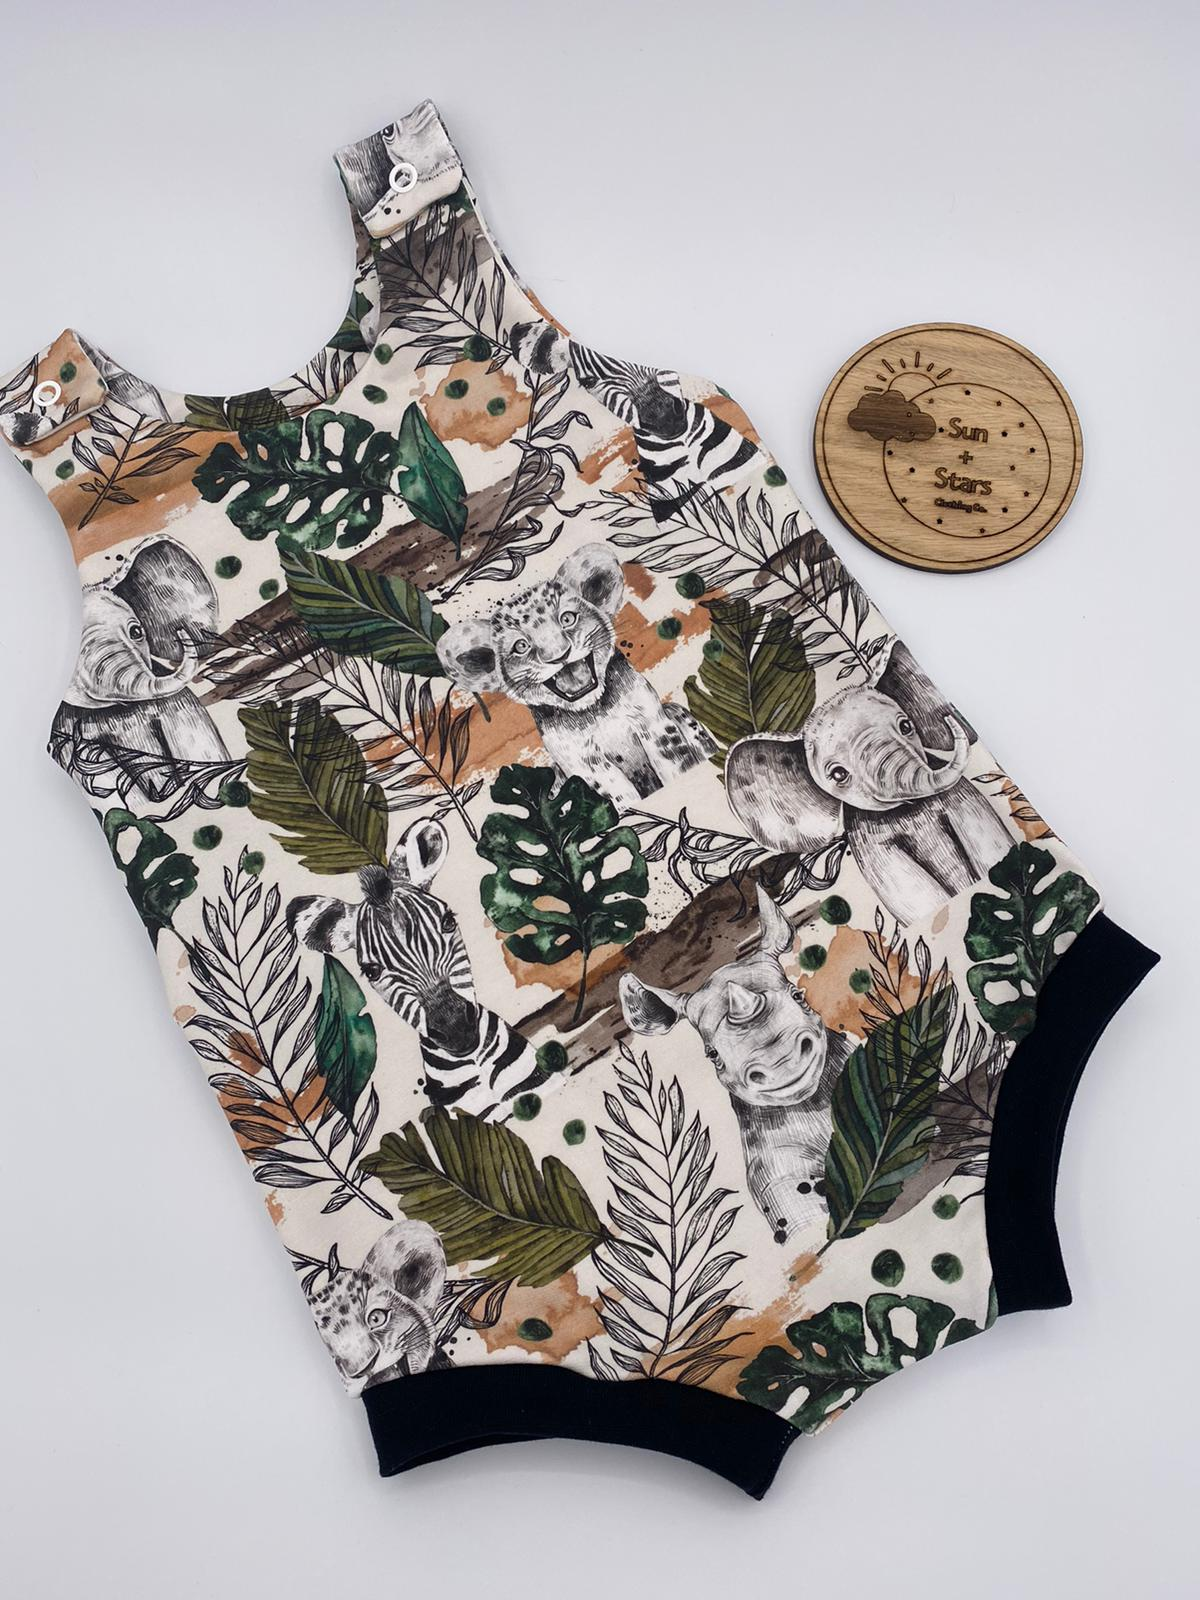 Our legless romper in jungle fabric with a black cuff